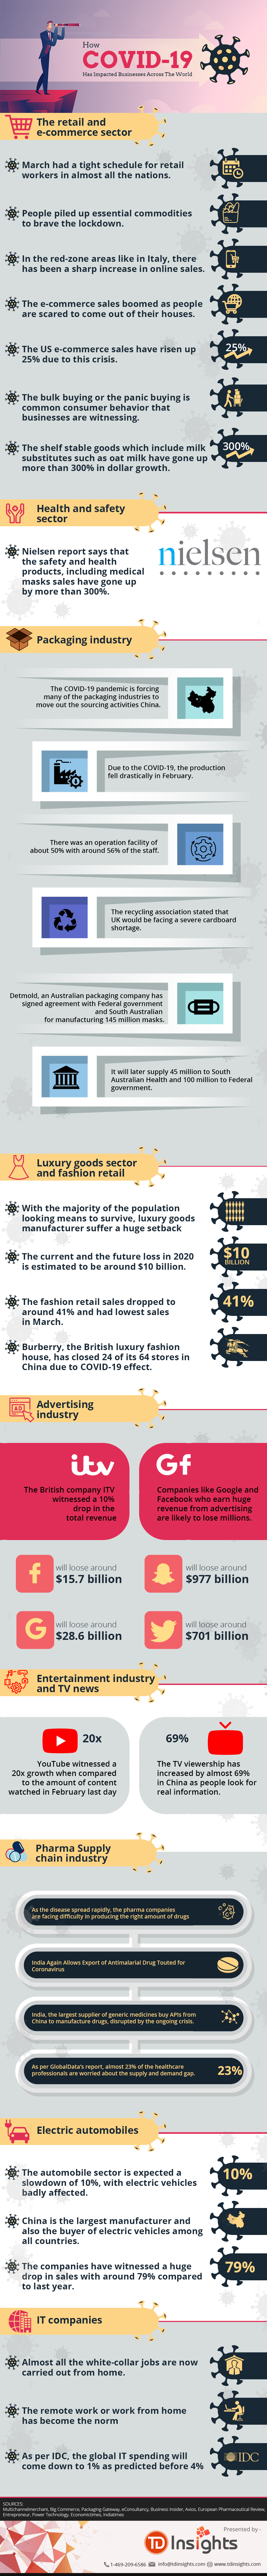 The Impact Of COVID-19 On Businesses Worldwide - Infographic